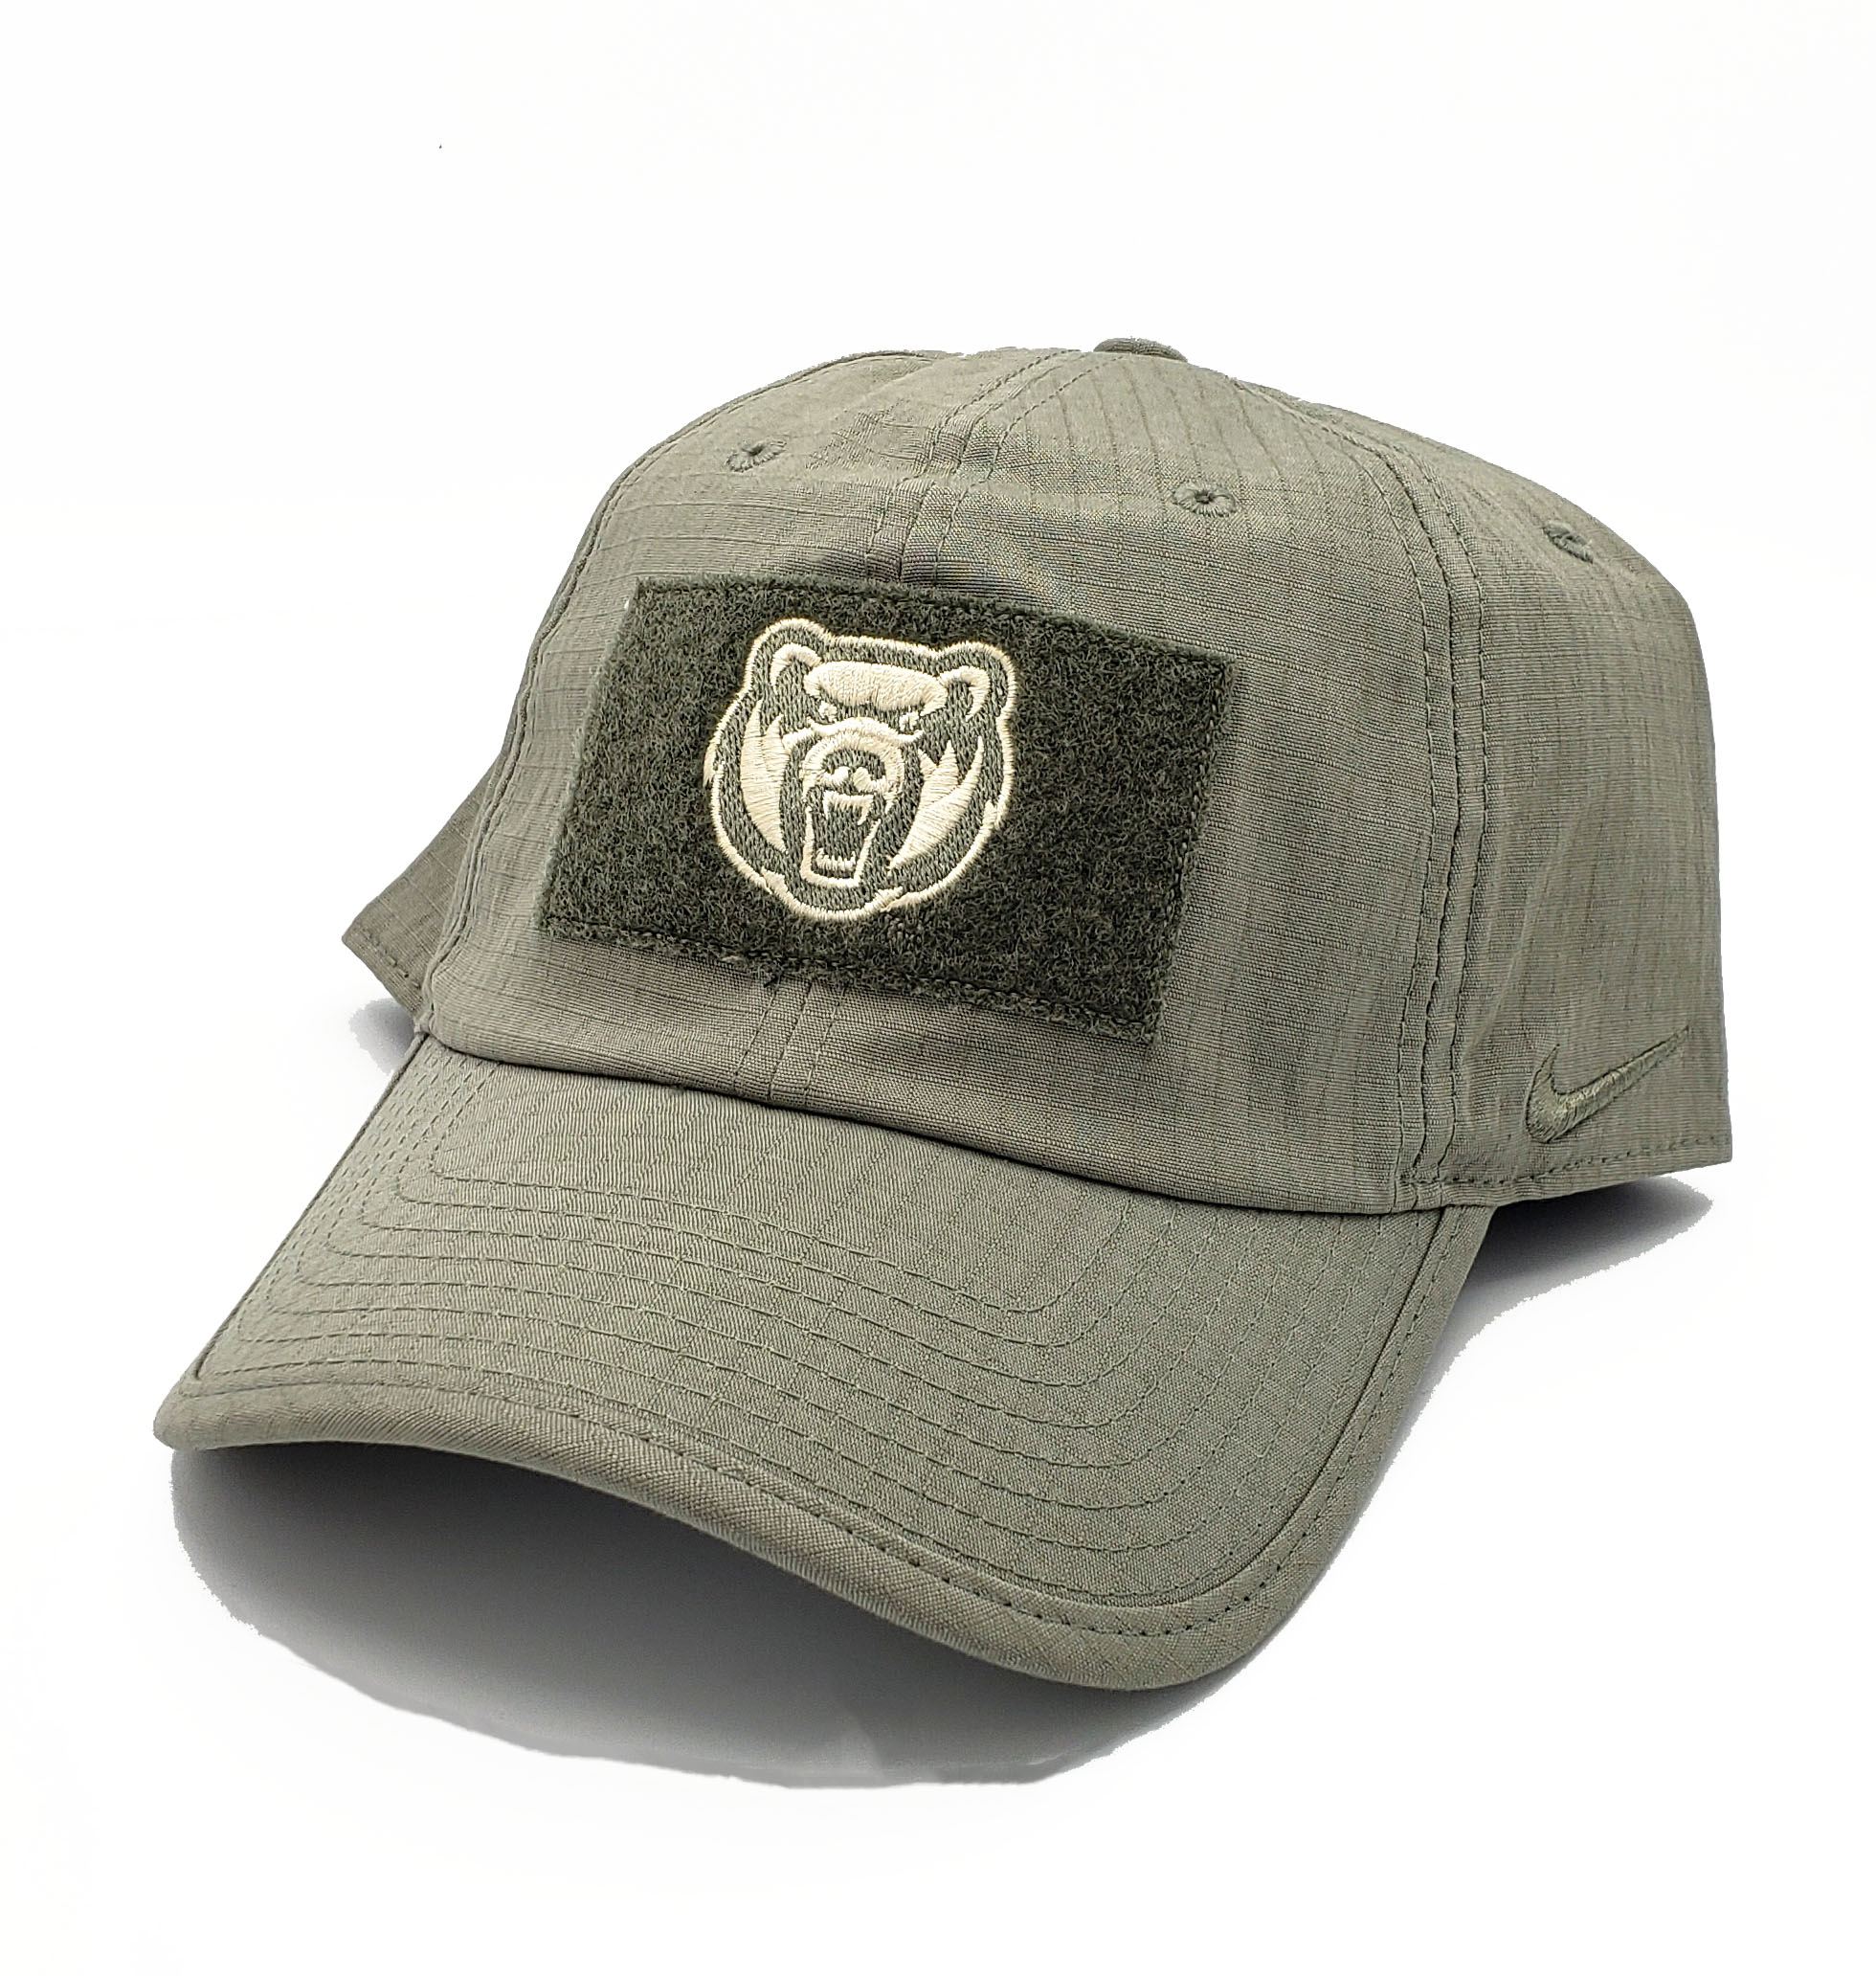 H86 Tactical Cap